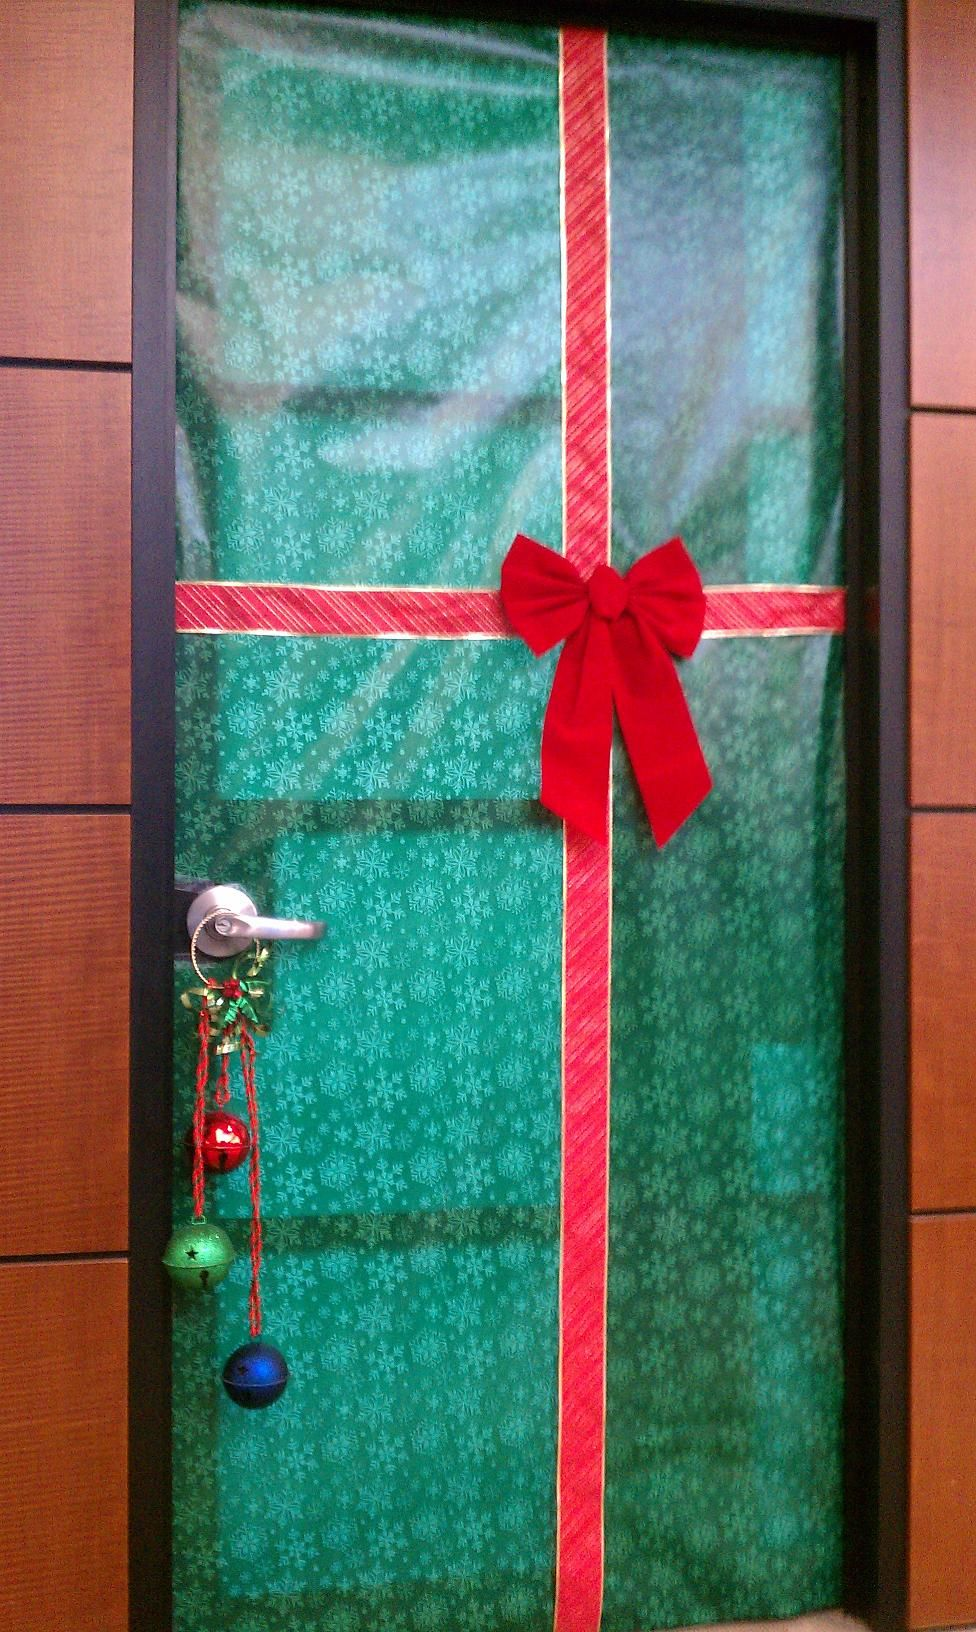 Use Temporary Contact Chalkboard And Draw A Festive Scene Or Saying Like This Door Here Make Your Own Holiday Inspired Doormat